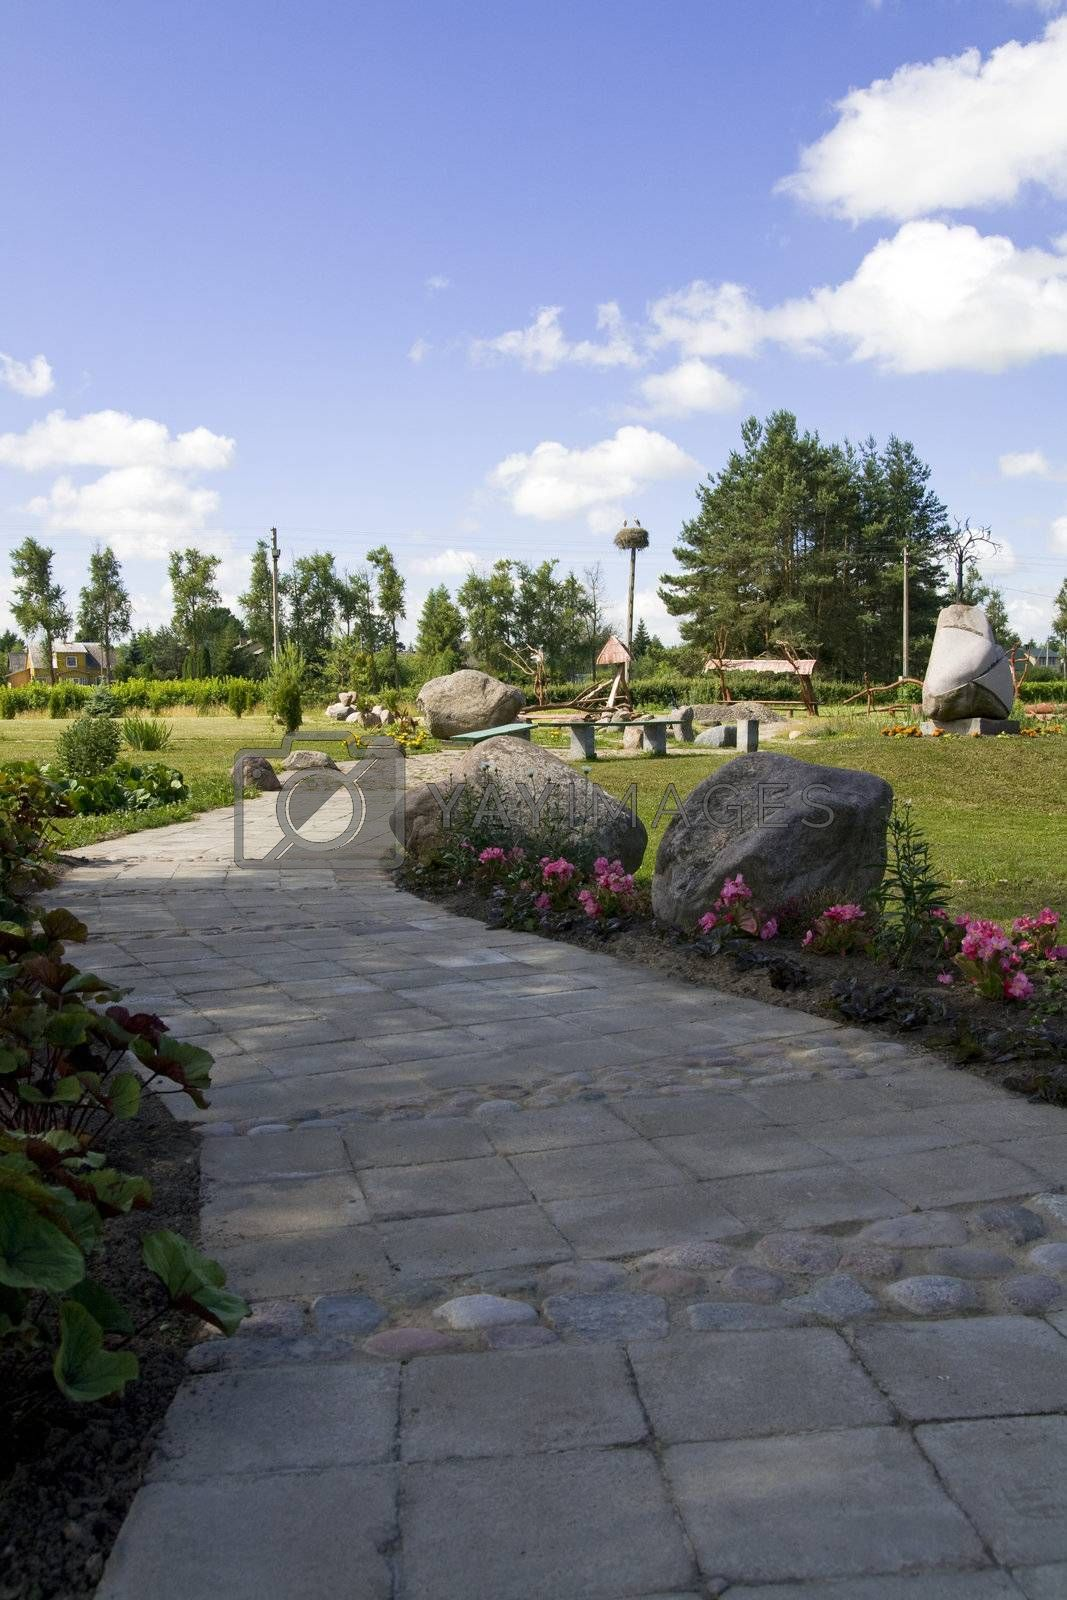 Footpath in the stones park